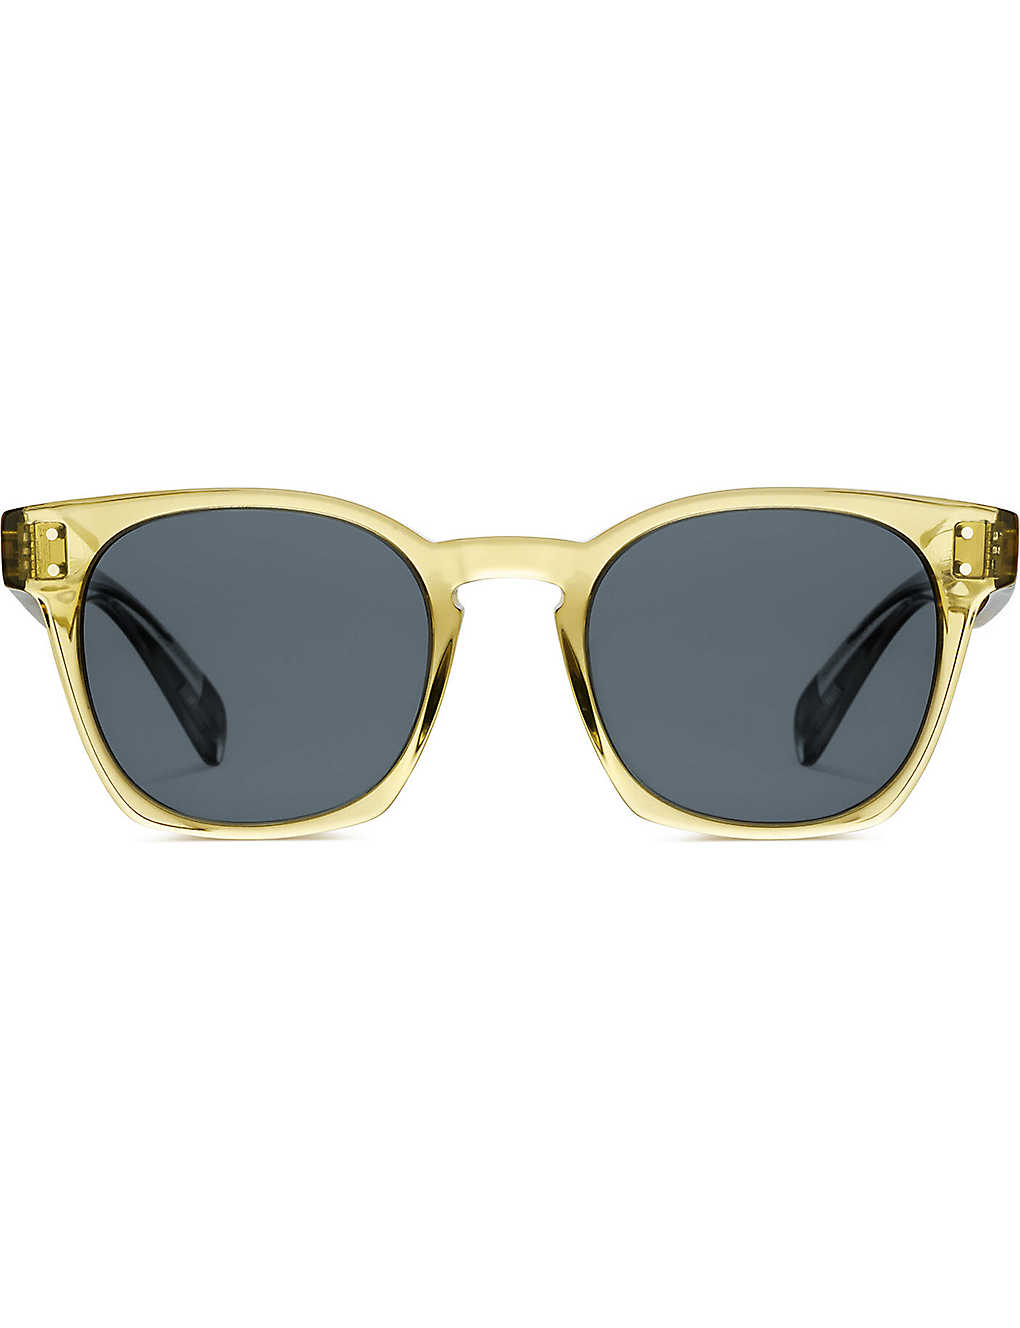 f74891a3aaa9 Oliver Peoples photochromic sunglasses- L100109 Beige Crystal and Indigo ...